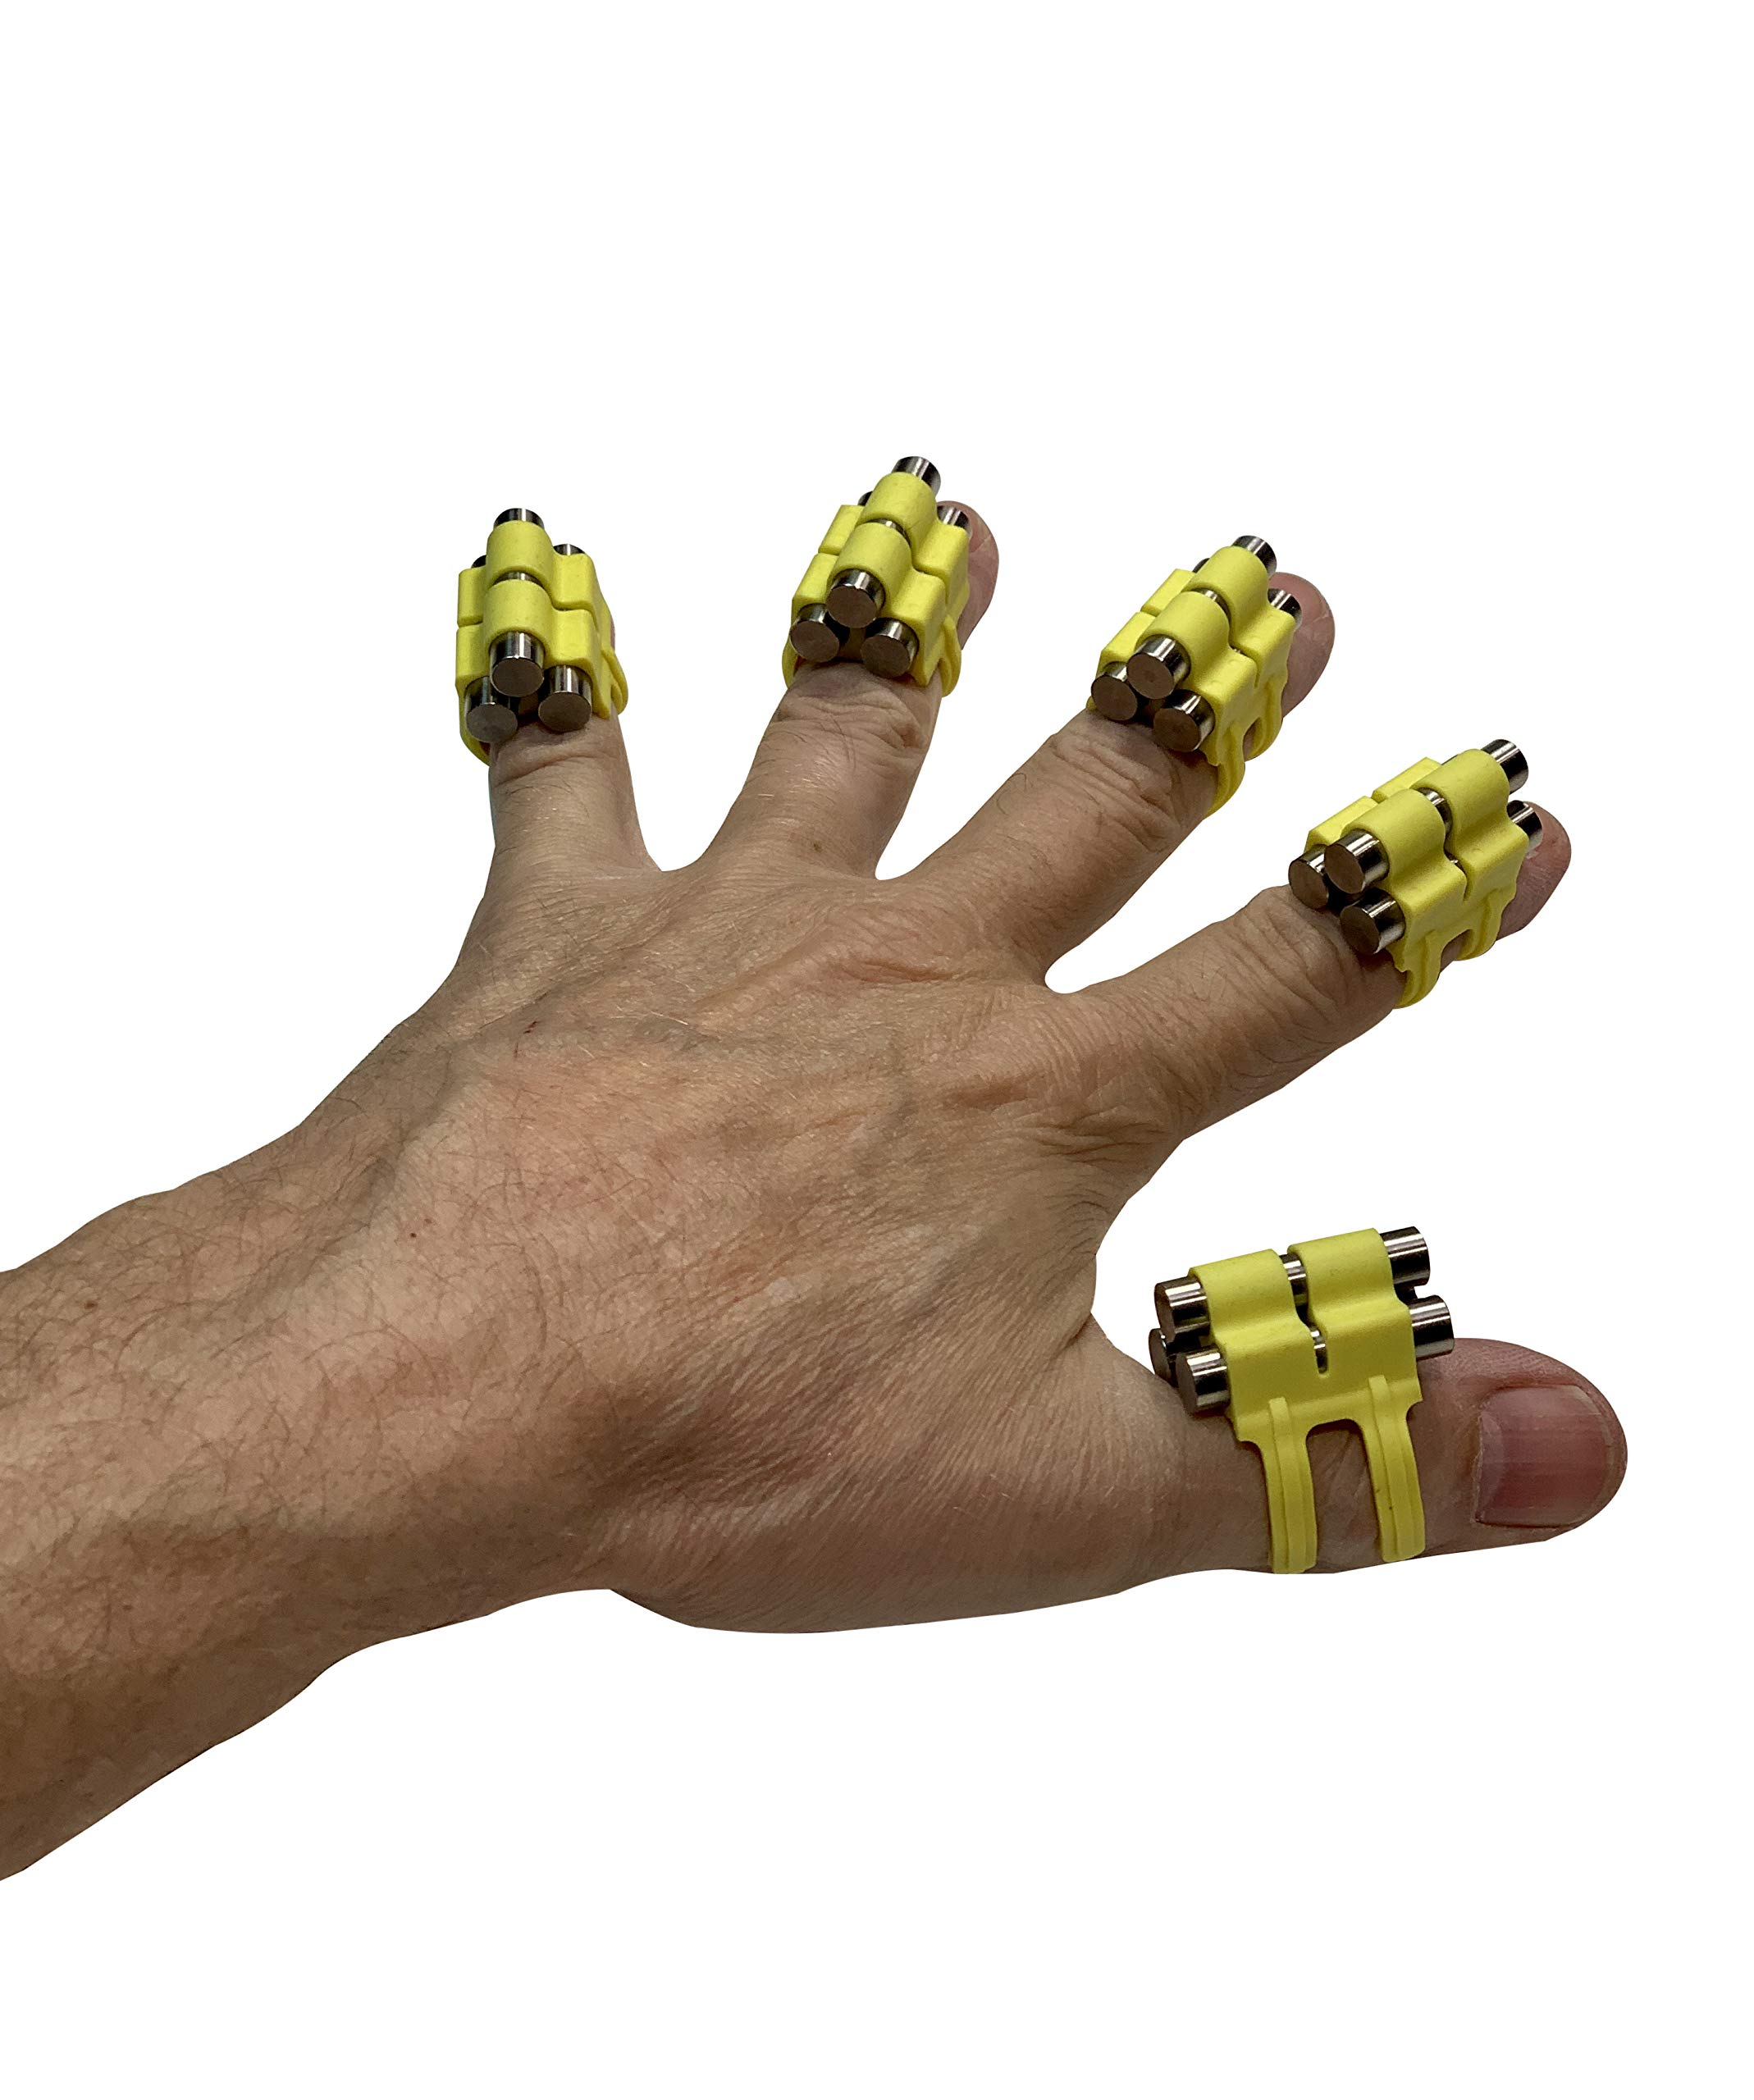 Finger Weights Original - Set of 5 - for Music Sports Gamers and Health Black or Multicolor Grip Strength Hand Grip Strengthener Speed Trainer (Yellow)